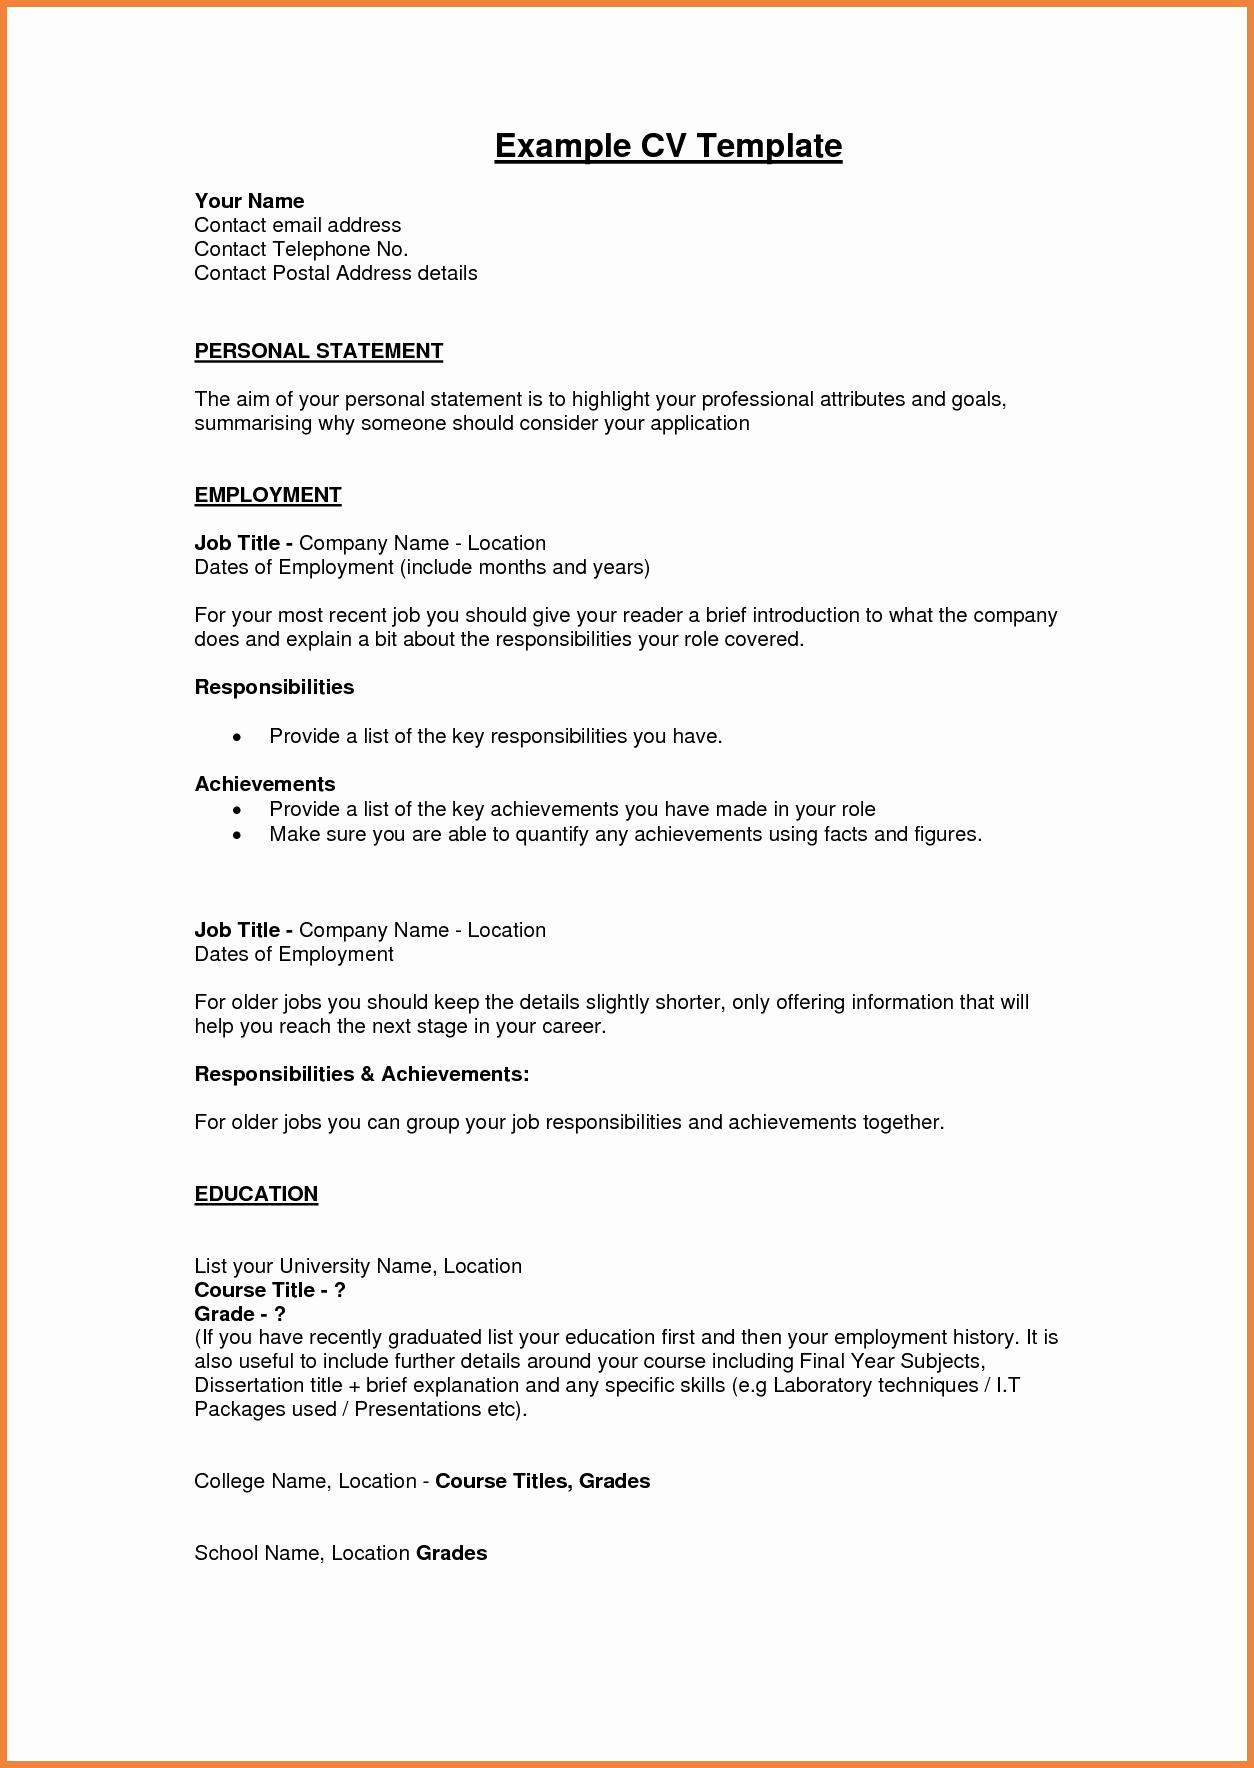 Resume Personal Statement - Personal Profile format In Resume Luxury Luxury Resume Pdf Beautiful